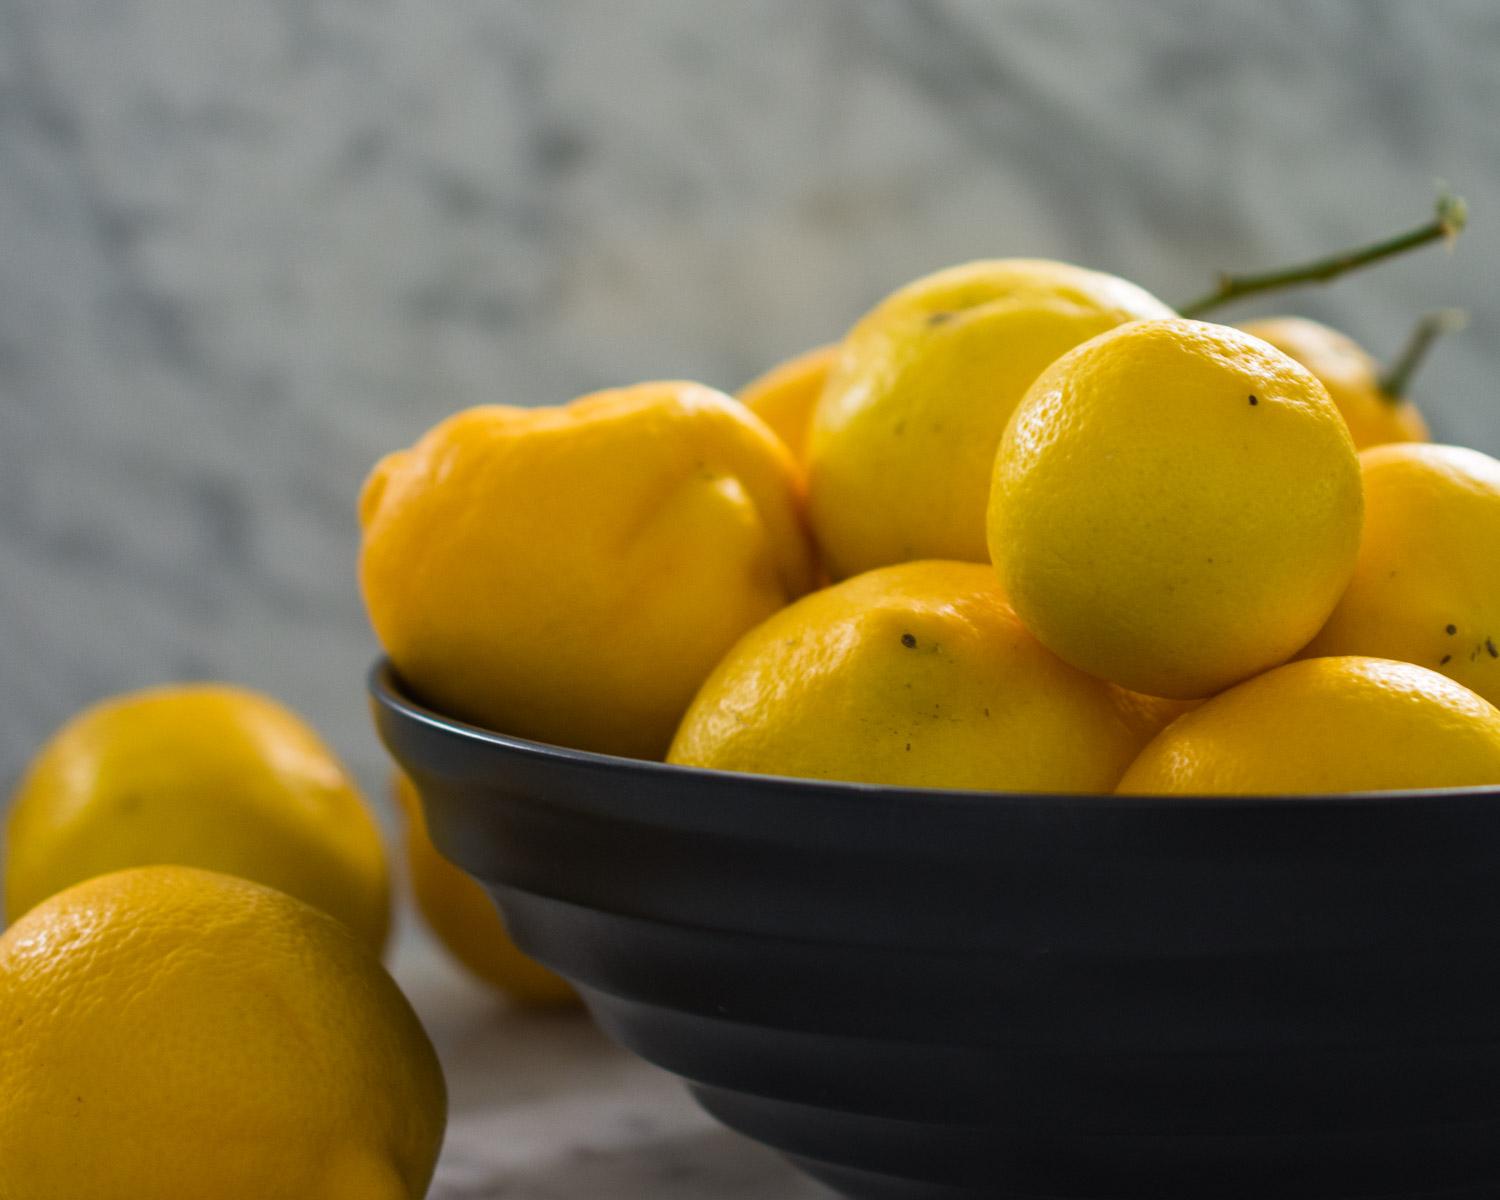 A bowl of fresh Meyer lemons.